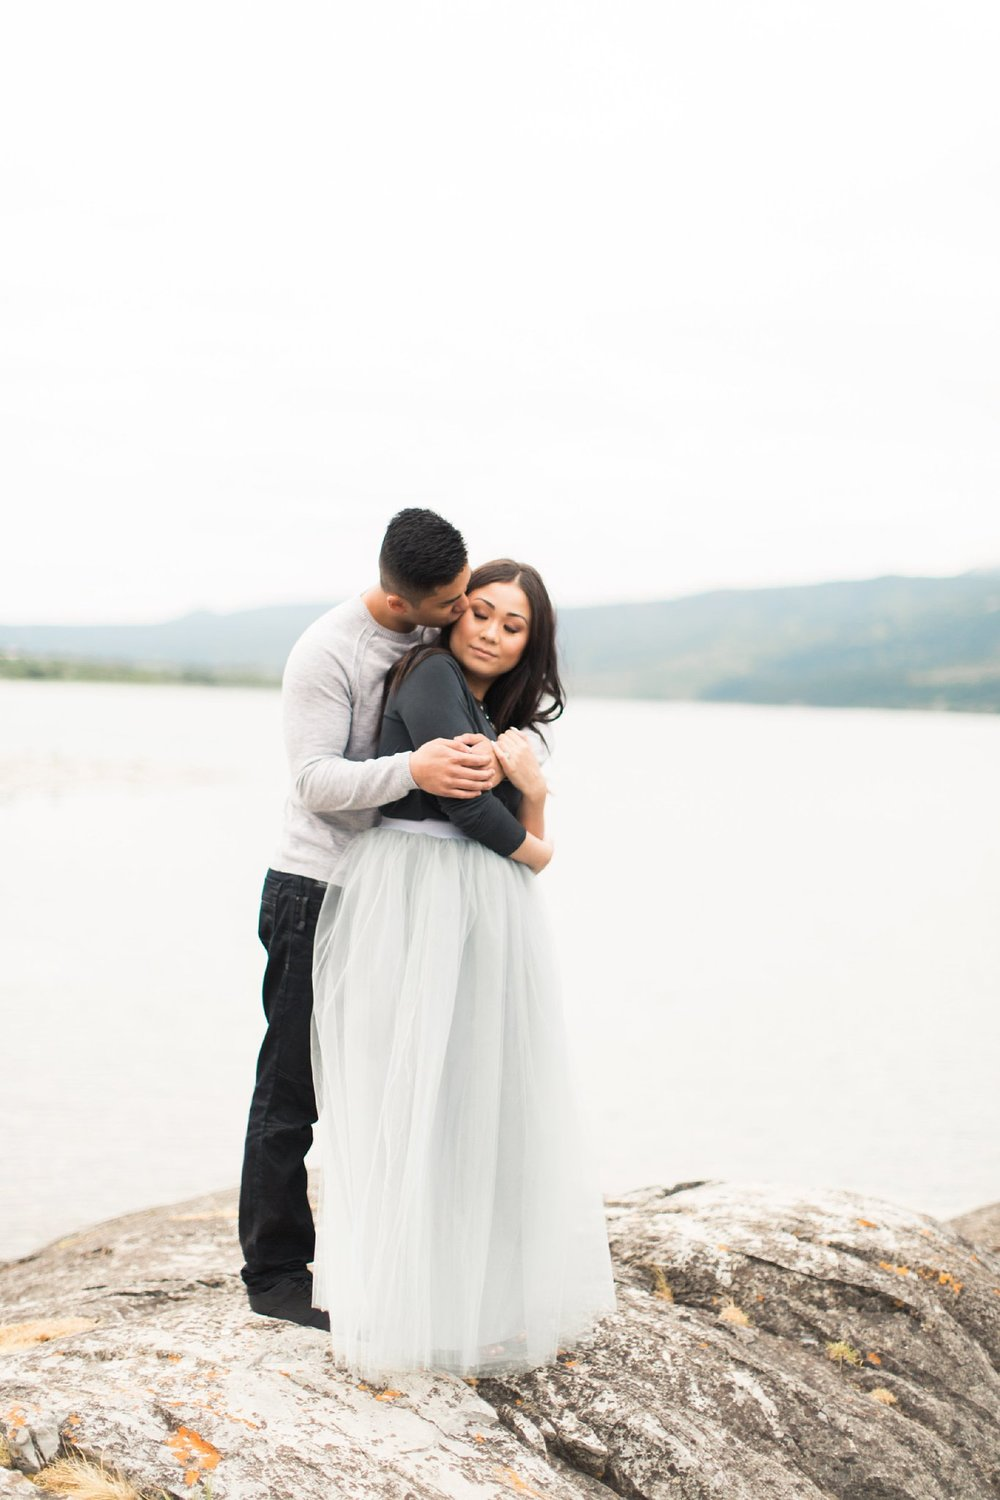 Waterton Alberta Engagement Calgary Wedding Photographer_0054.jpg